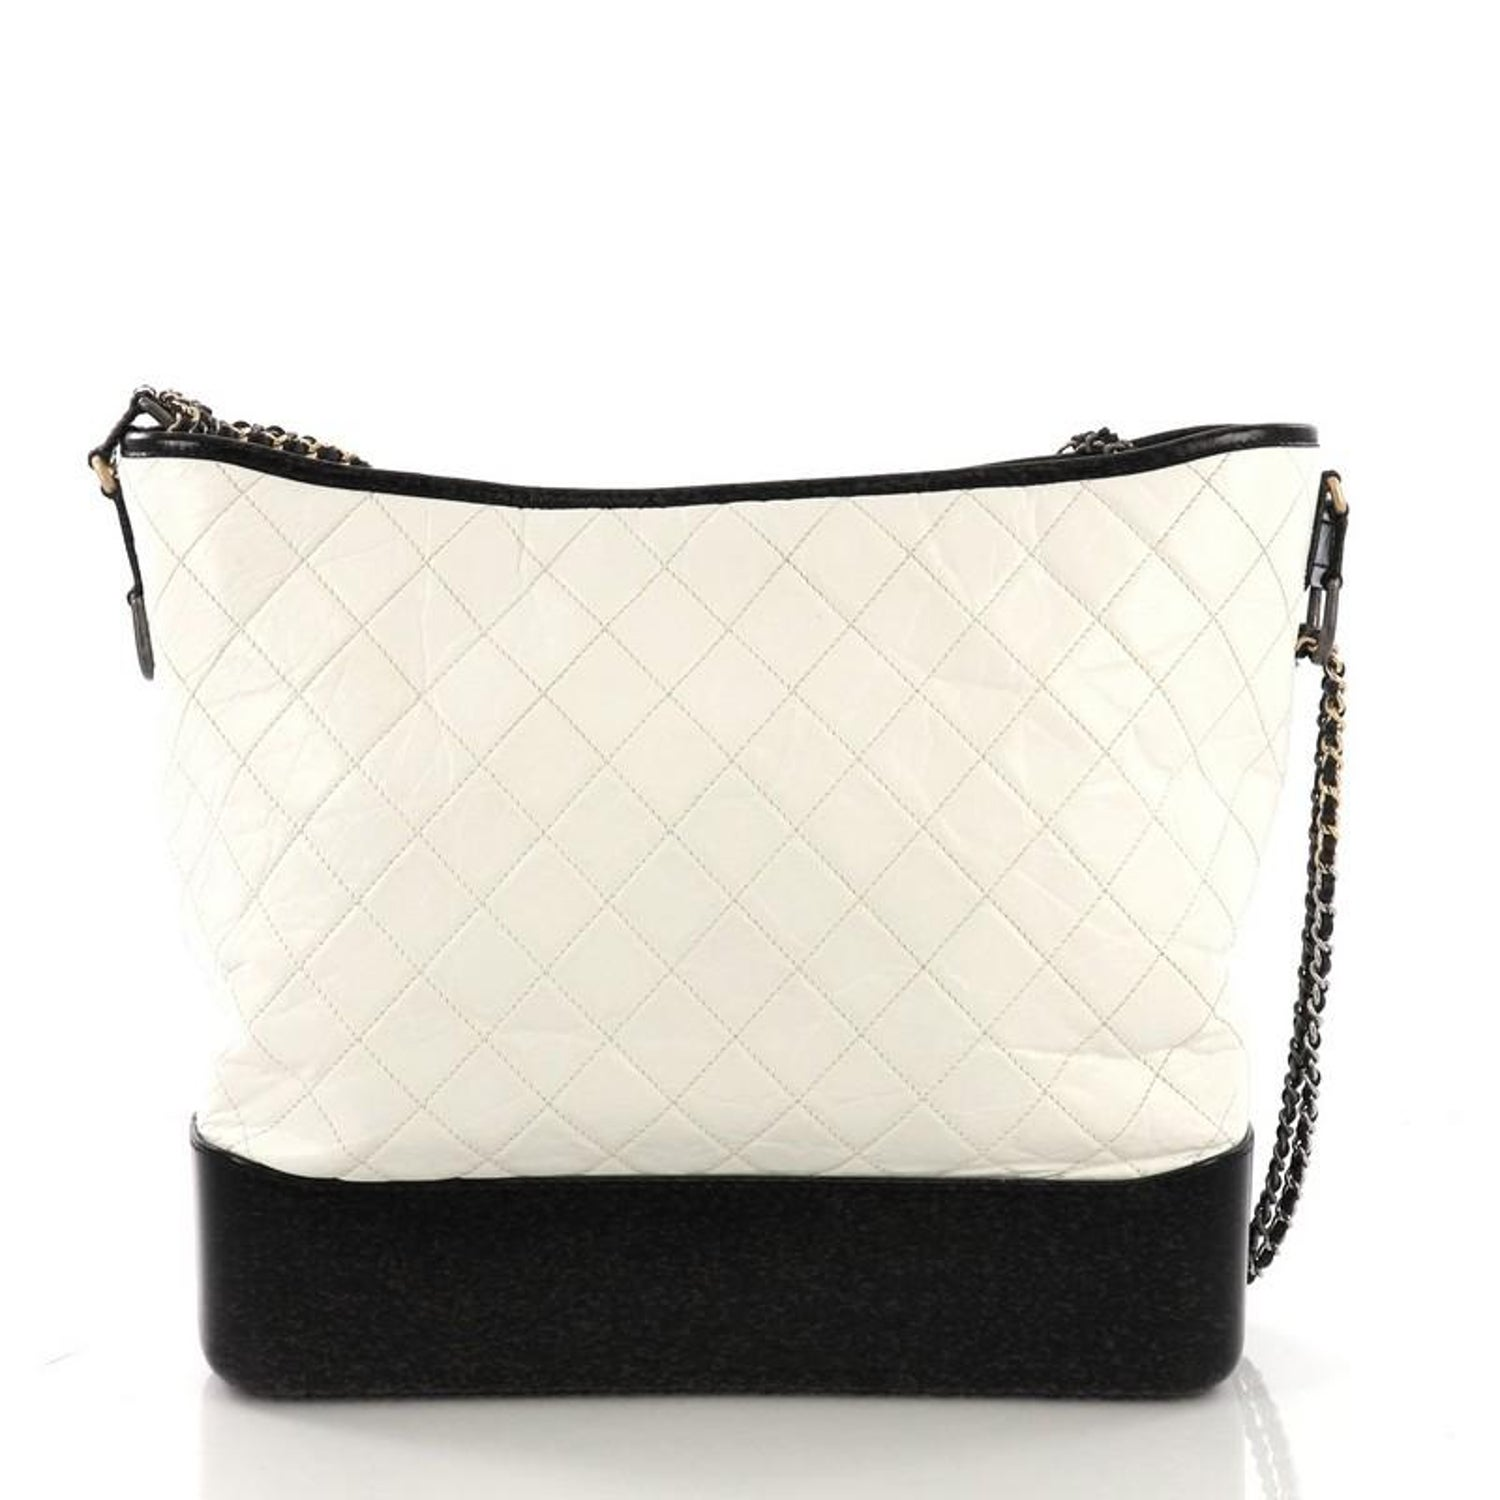 6e9e2f10b688 Chanel Gabrielle Hobo Quilted Aged Calfskin Large at 1stdibs